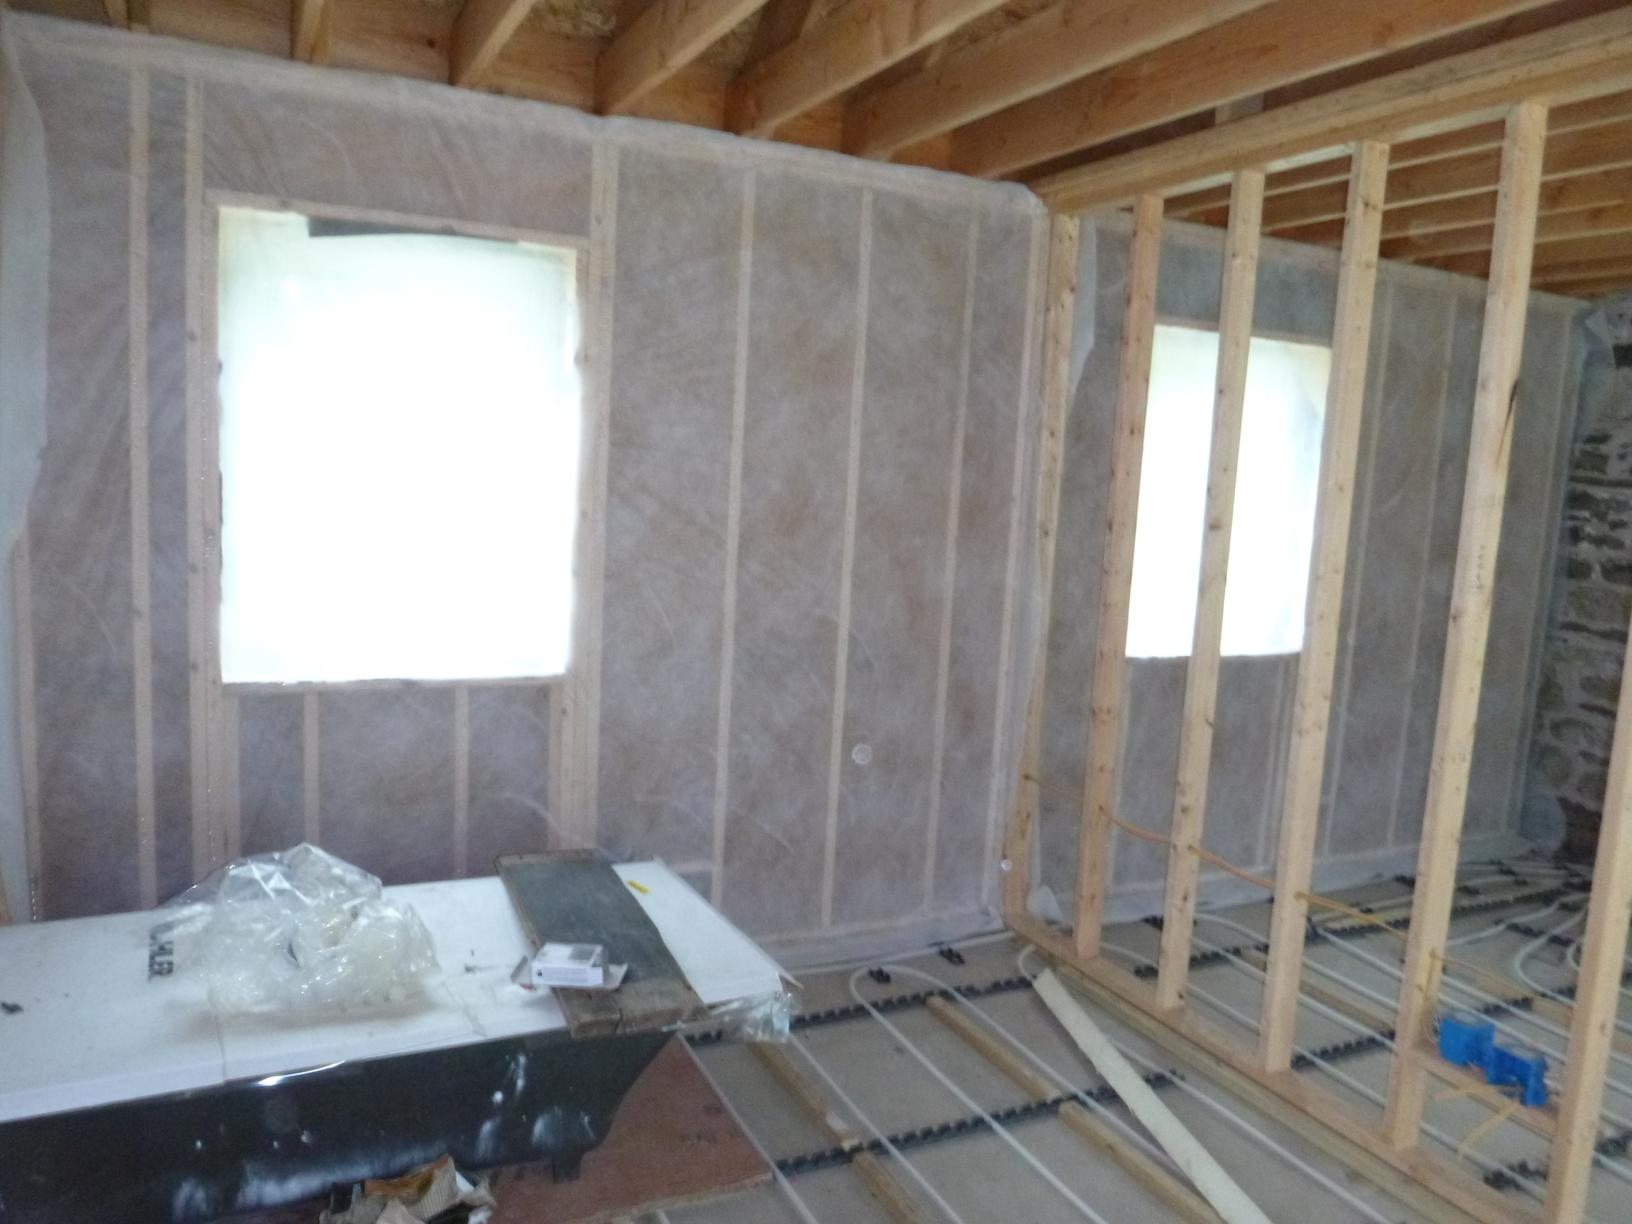 Dense Pack Cellulose for New Construction in Accord, NY - Before Photo